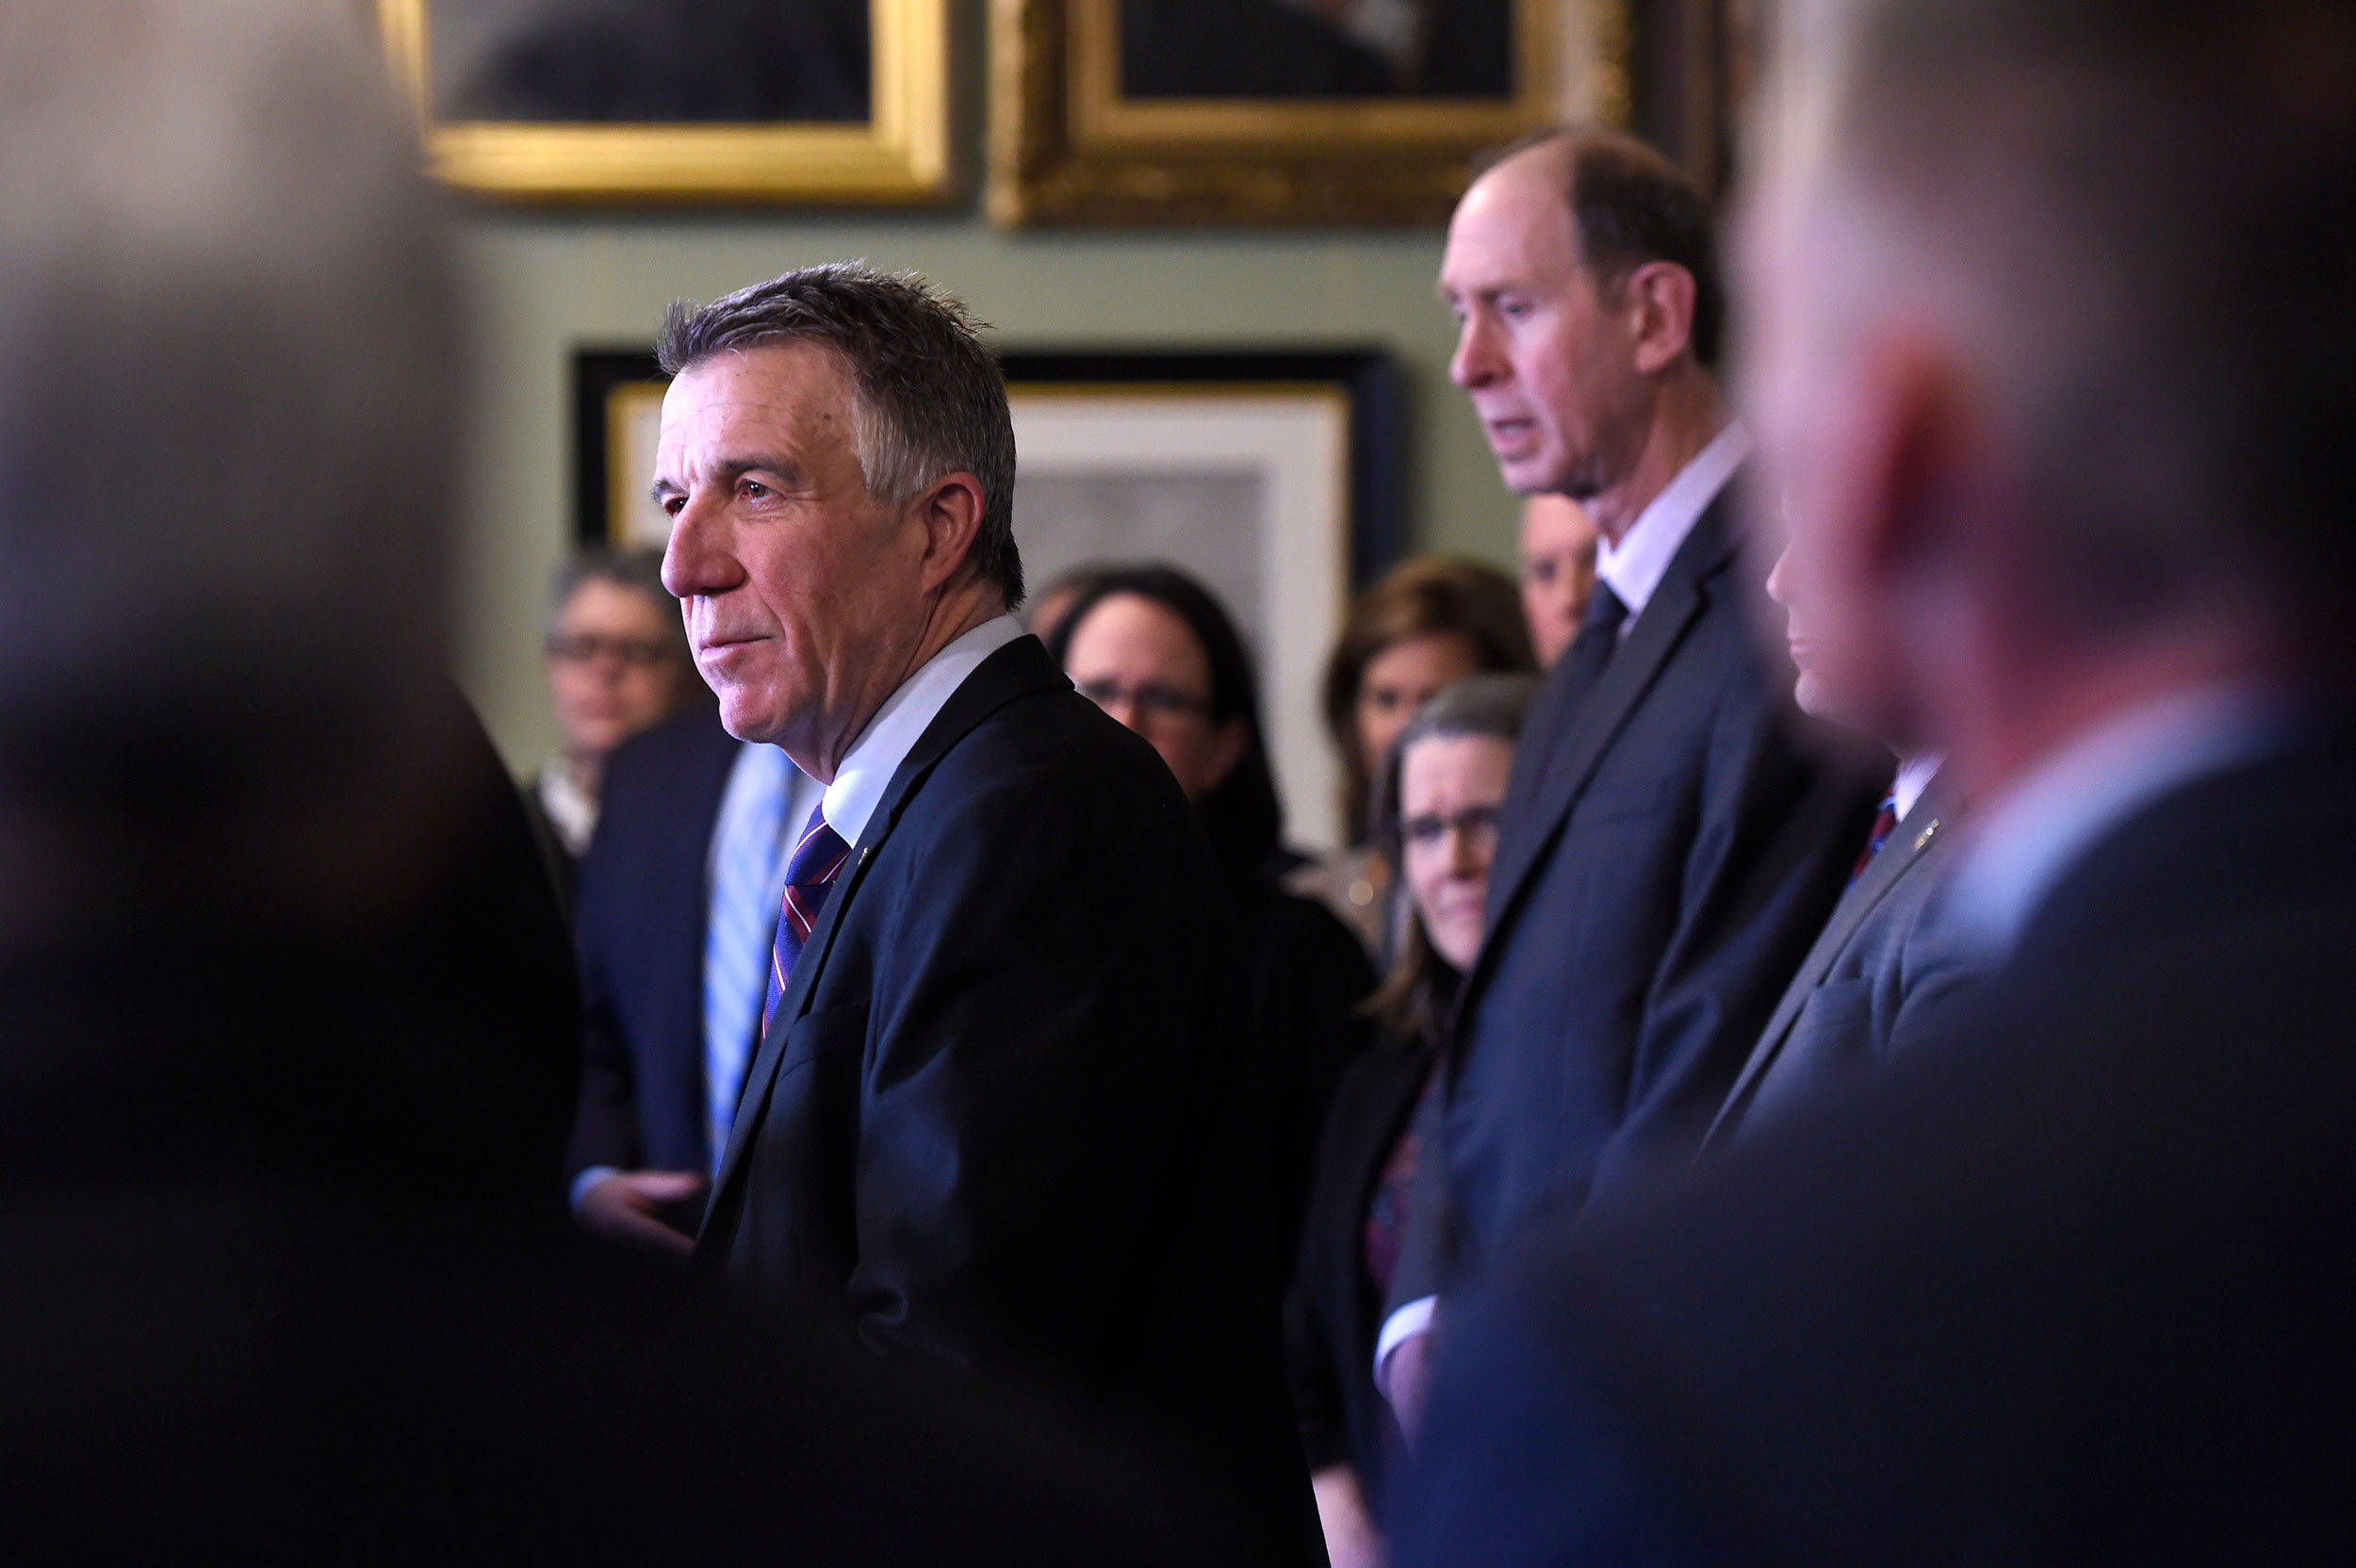 Vermont Gov. Phil Scott holds a press conference to address the coronavirus outbreak on Friday, March 13, in Montpelier, Vermont.